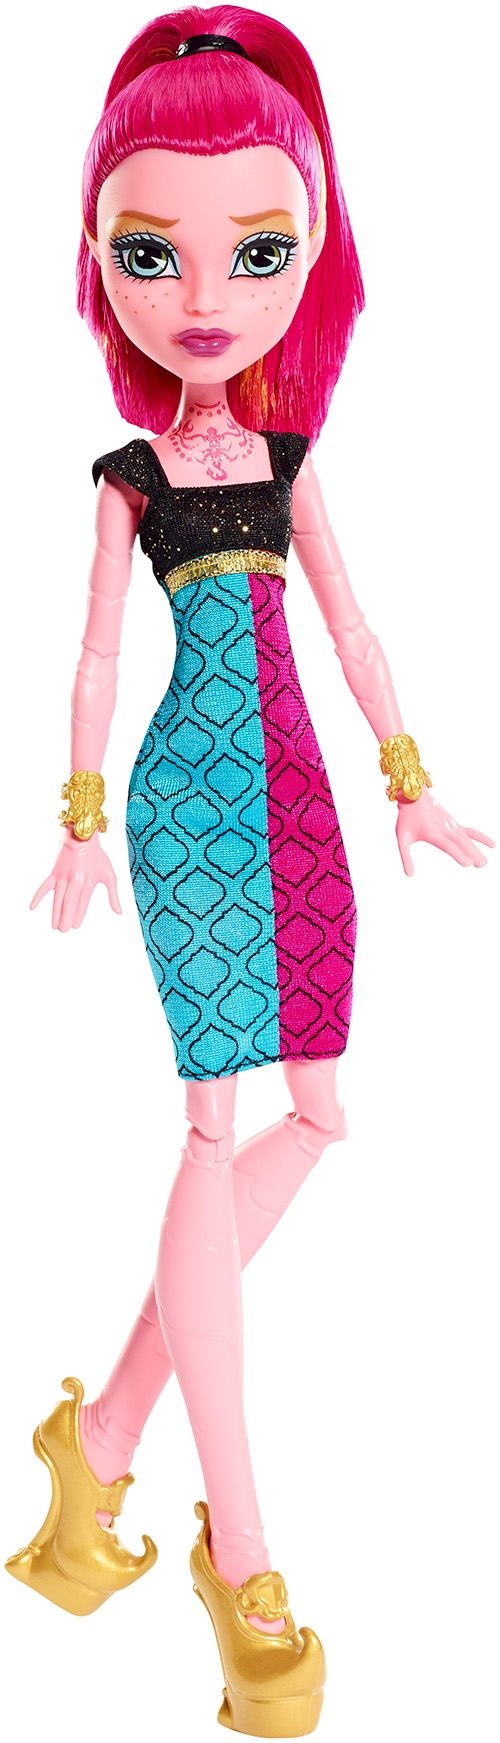 Monster High Basic Doll Gigi  Shop Monster High Doll Accessories